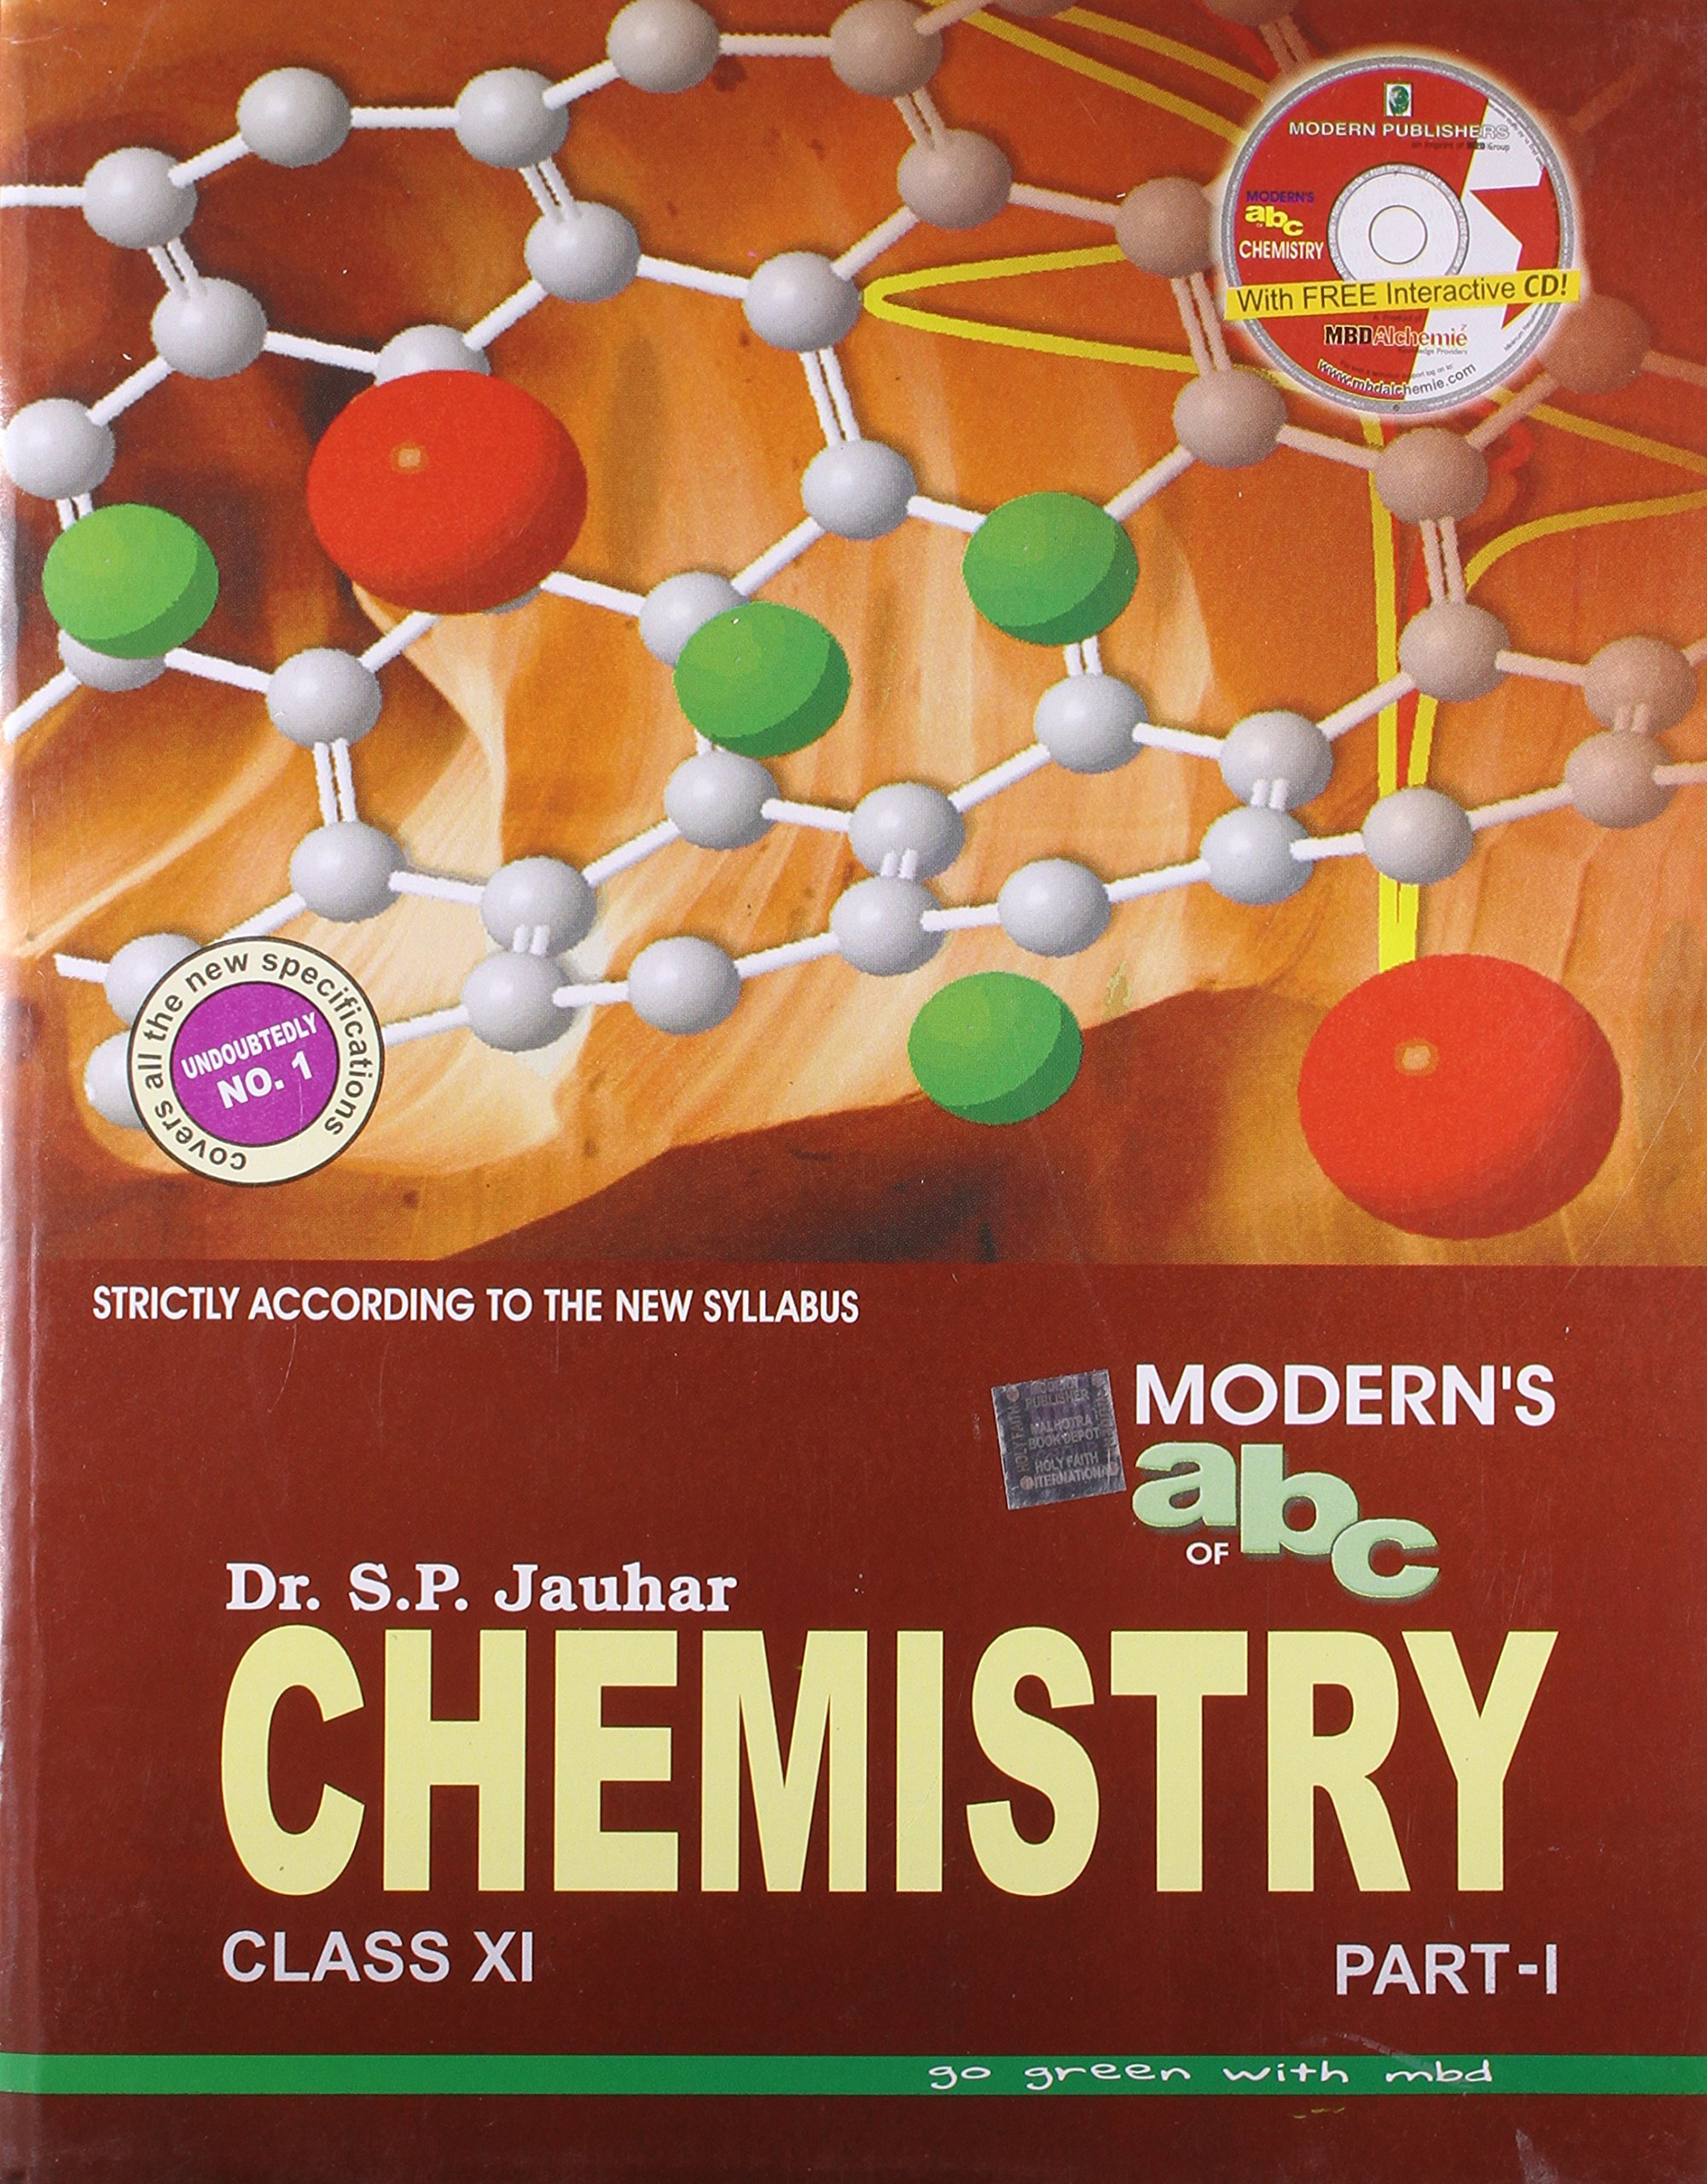 Moderns abc of chemistry for class xi set of 2 parts with cd old edition amazon in s p jauhar books